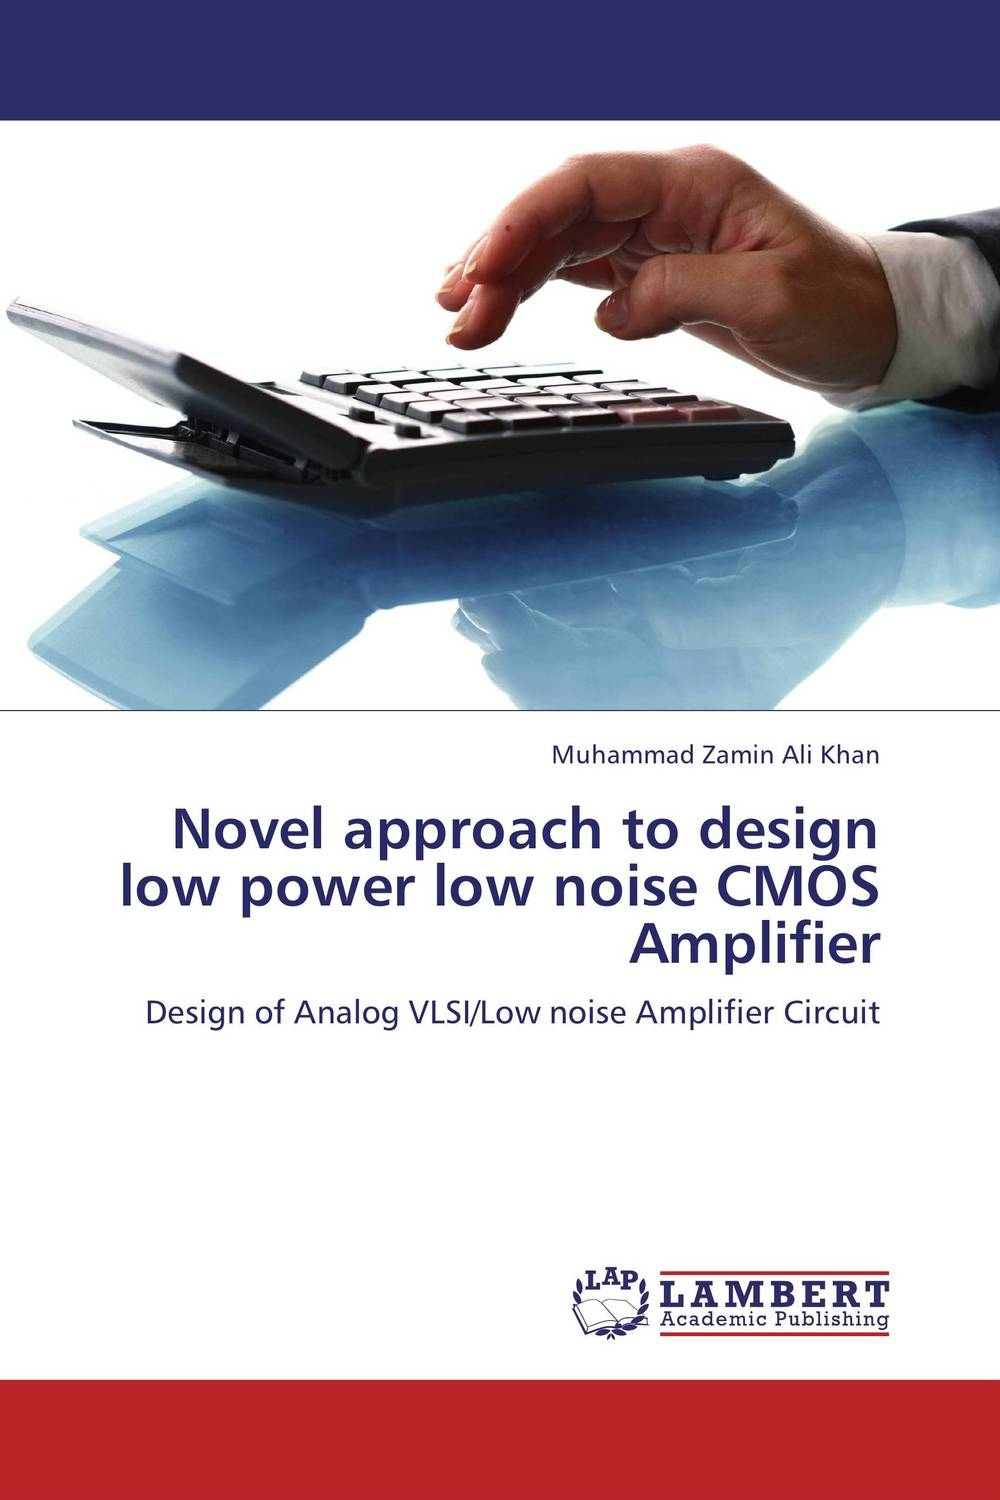 Novel approach to design low power low noise CMOS Amplifier driven to distraction